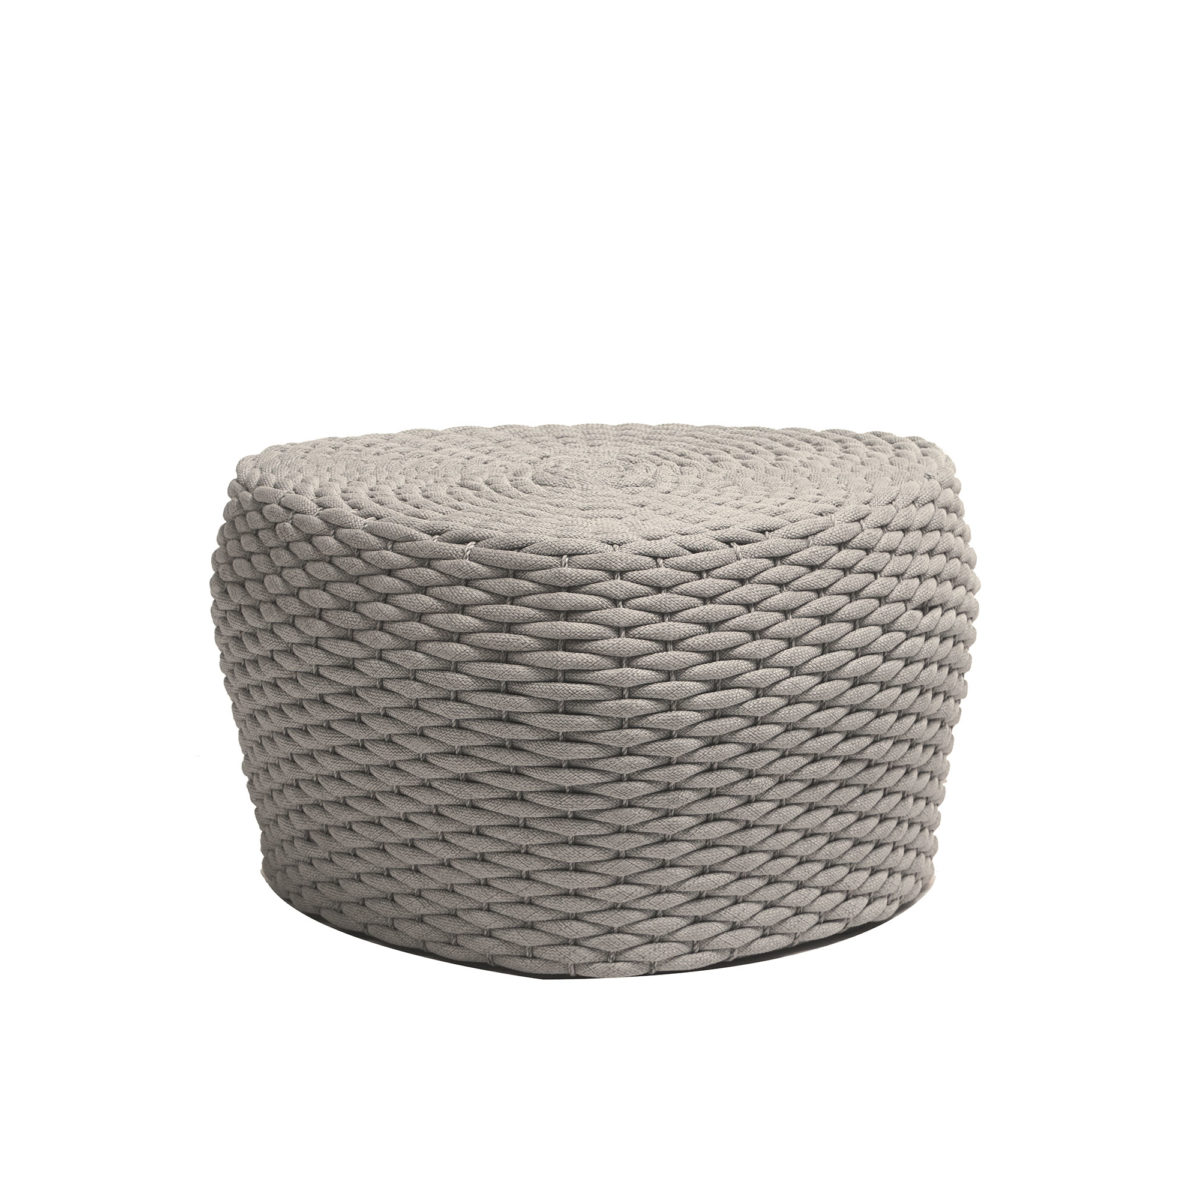 The short Roca stool in Beige